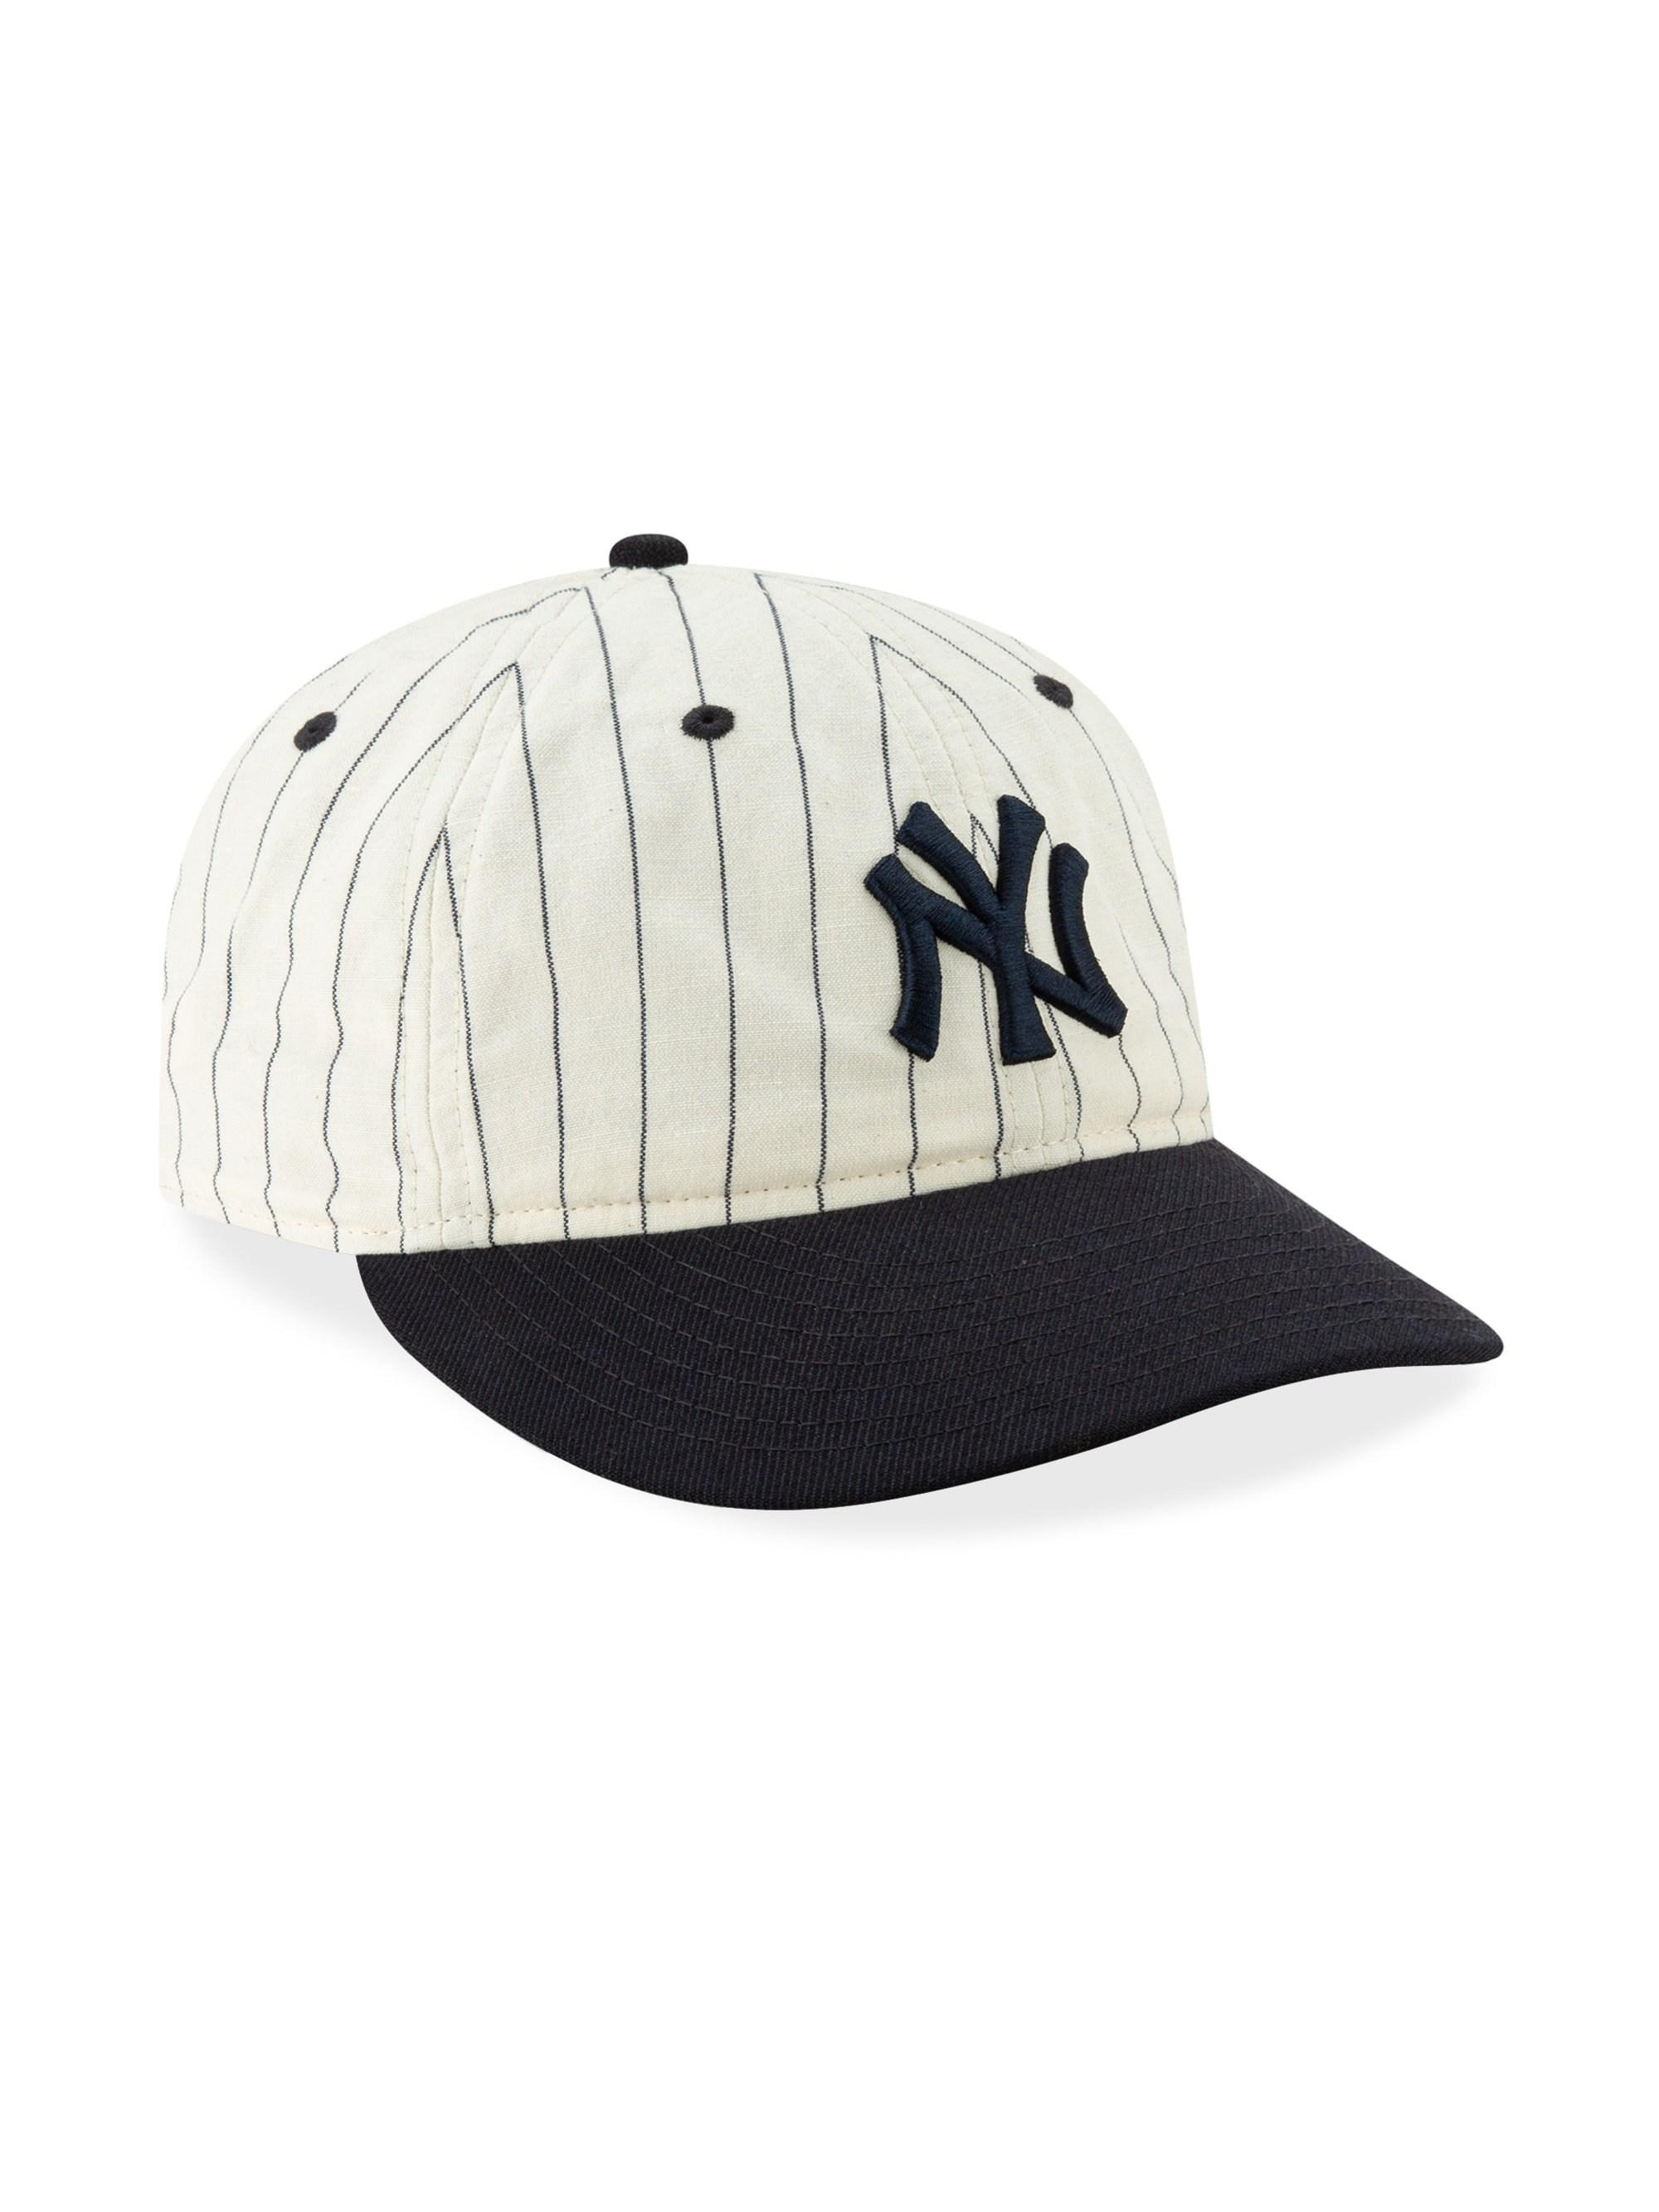 KTZ Men s 9fifty Retro Ny Cap - Blue White in White for Men - Lyst fd0325932af